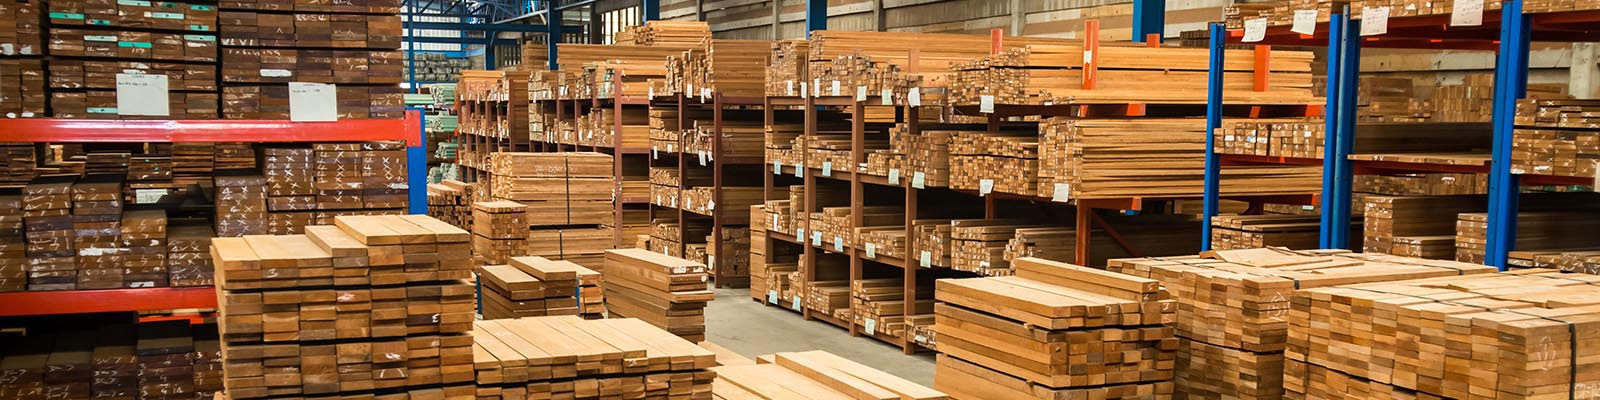 Start Your Own Industry with Secondhand Timber Pallets - London Groove  Machine